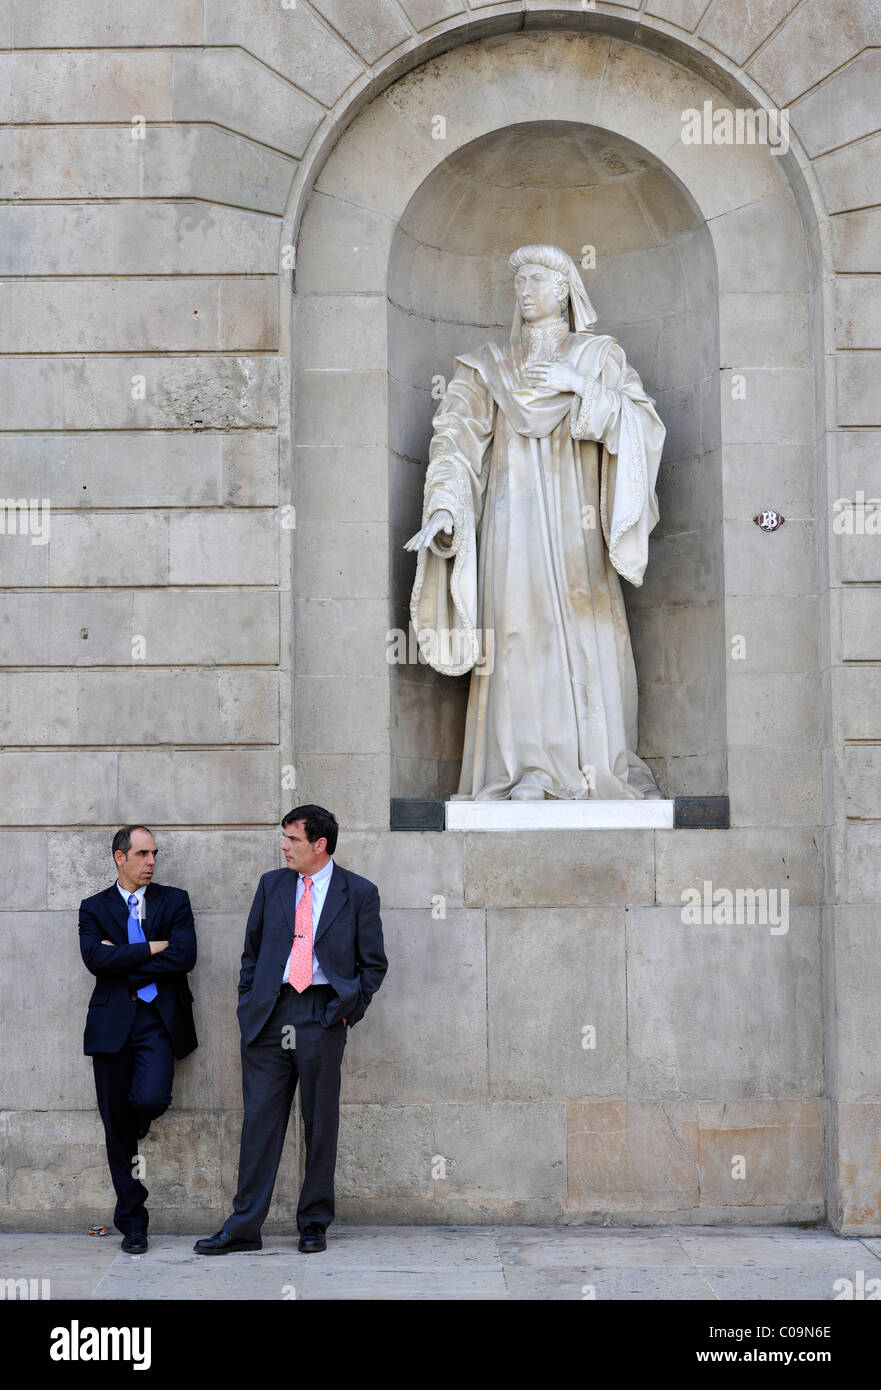 Government officials talking in front of a statue, seat of the Catalan regional government, Palau de la Generalitat - Stock Image